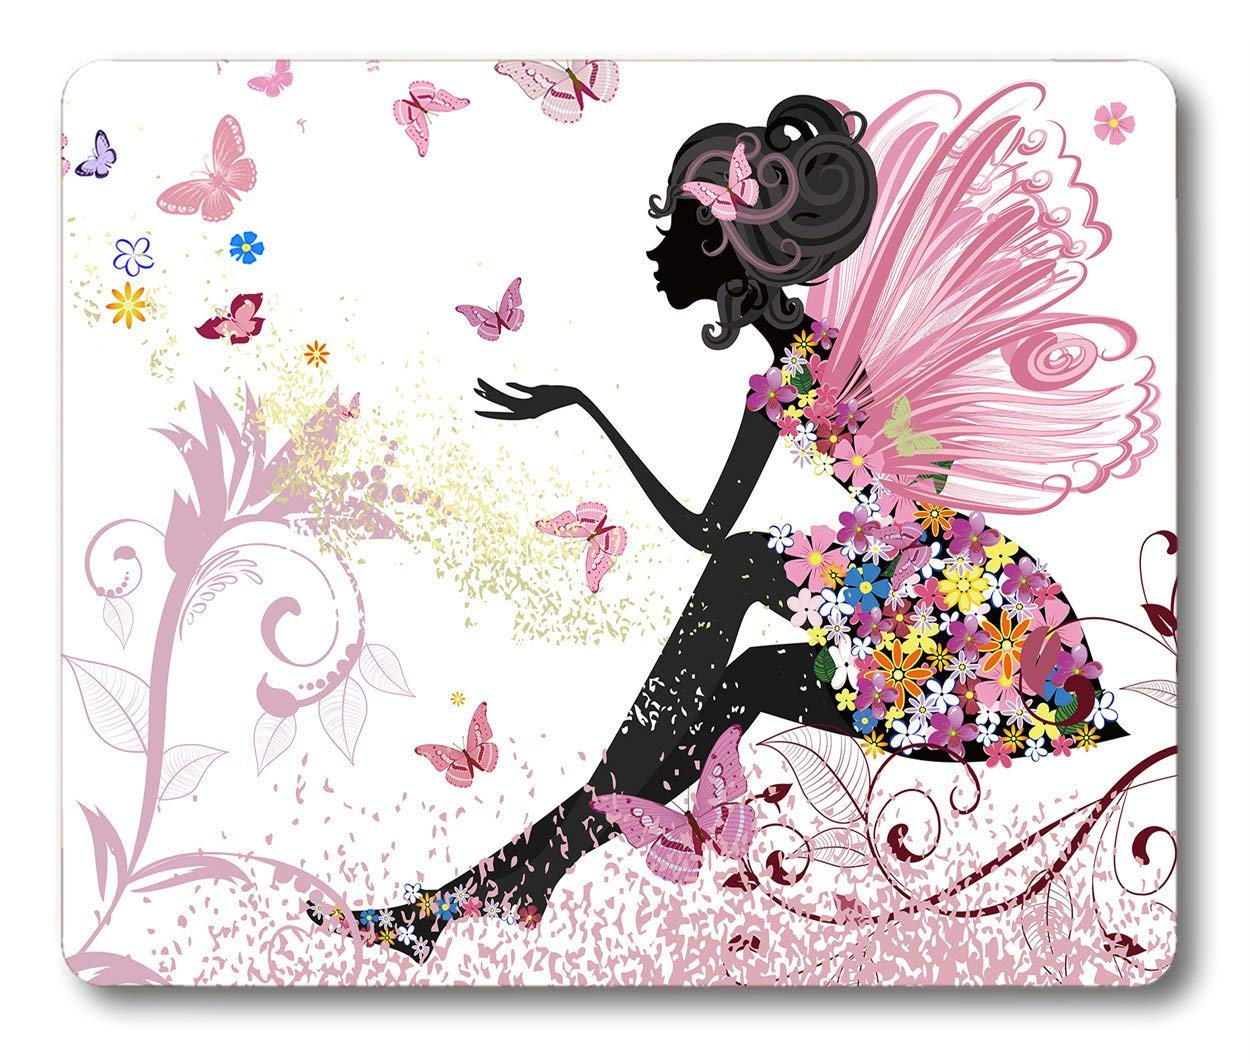 Smooffly Butterfly Girl Mouse Pad,Pink Butterfly Beautiful Girl Non-Slip Rubber Mouse pad Gaming Mouse Pad